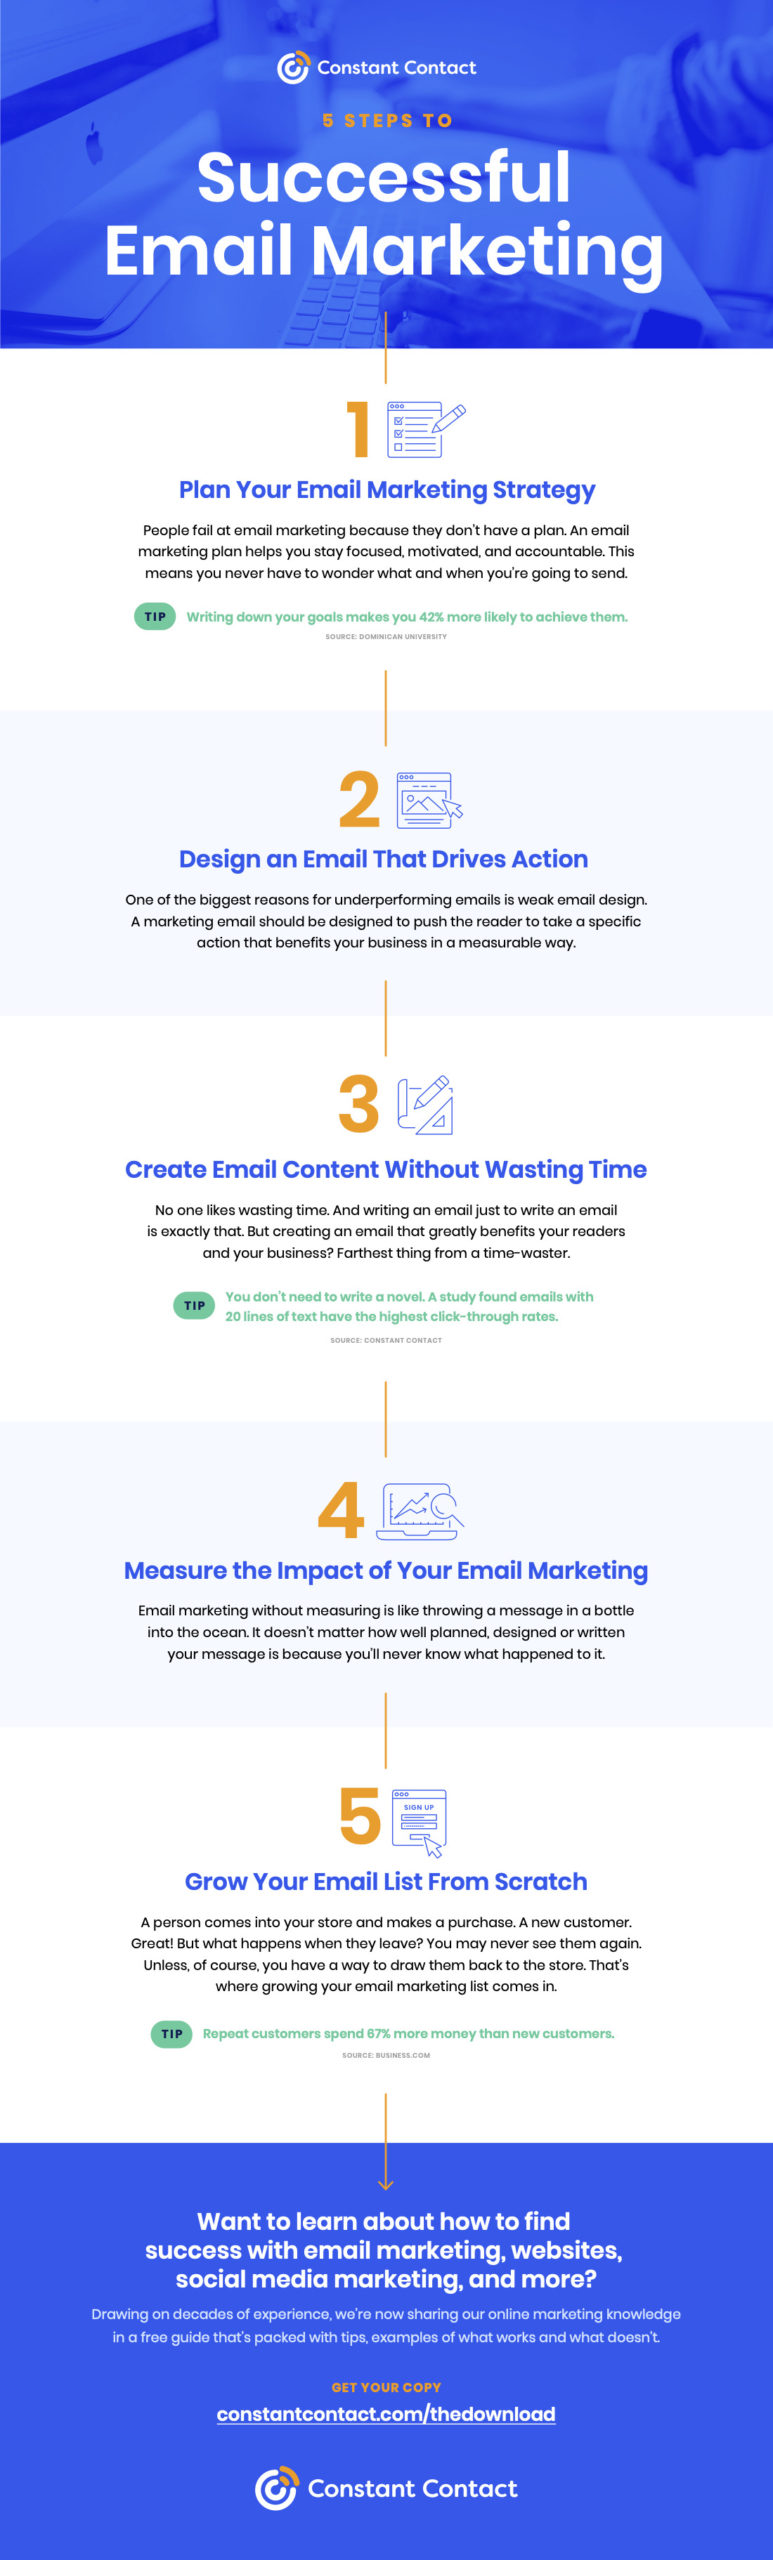 5 steps to successful email marketing guide